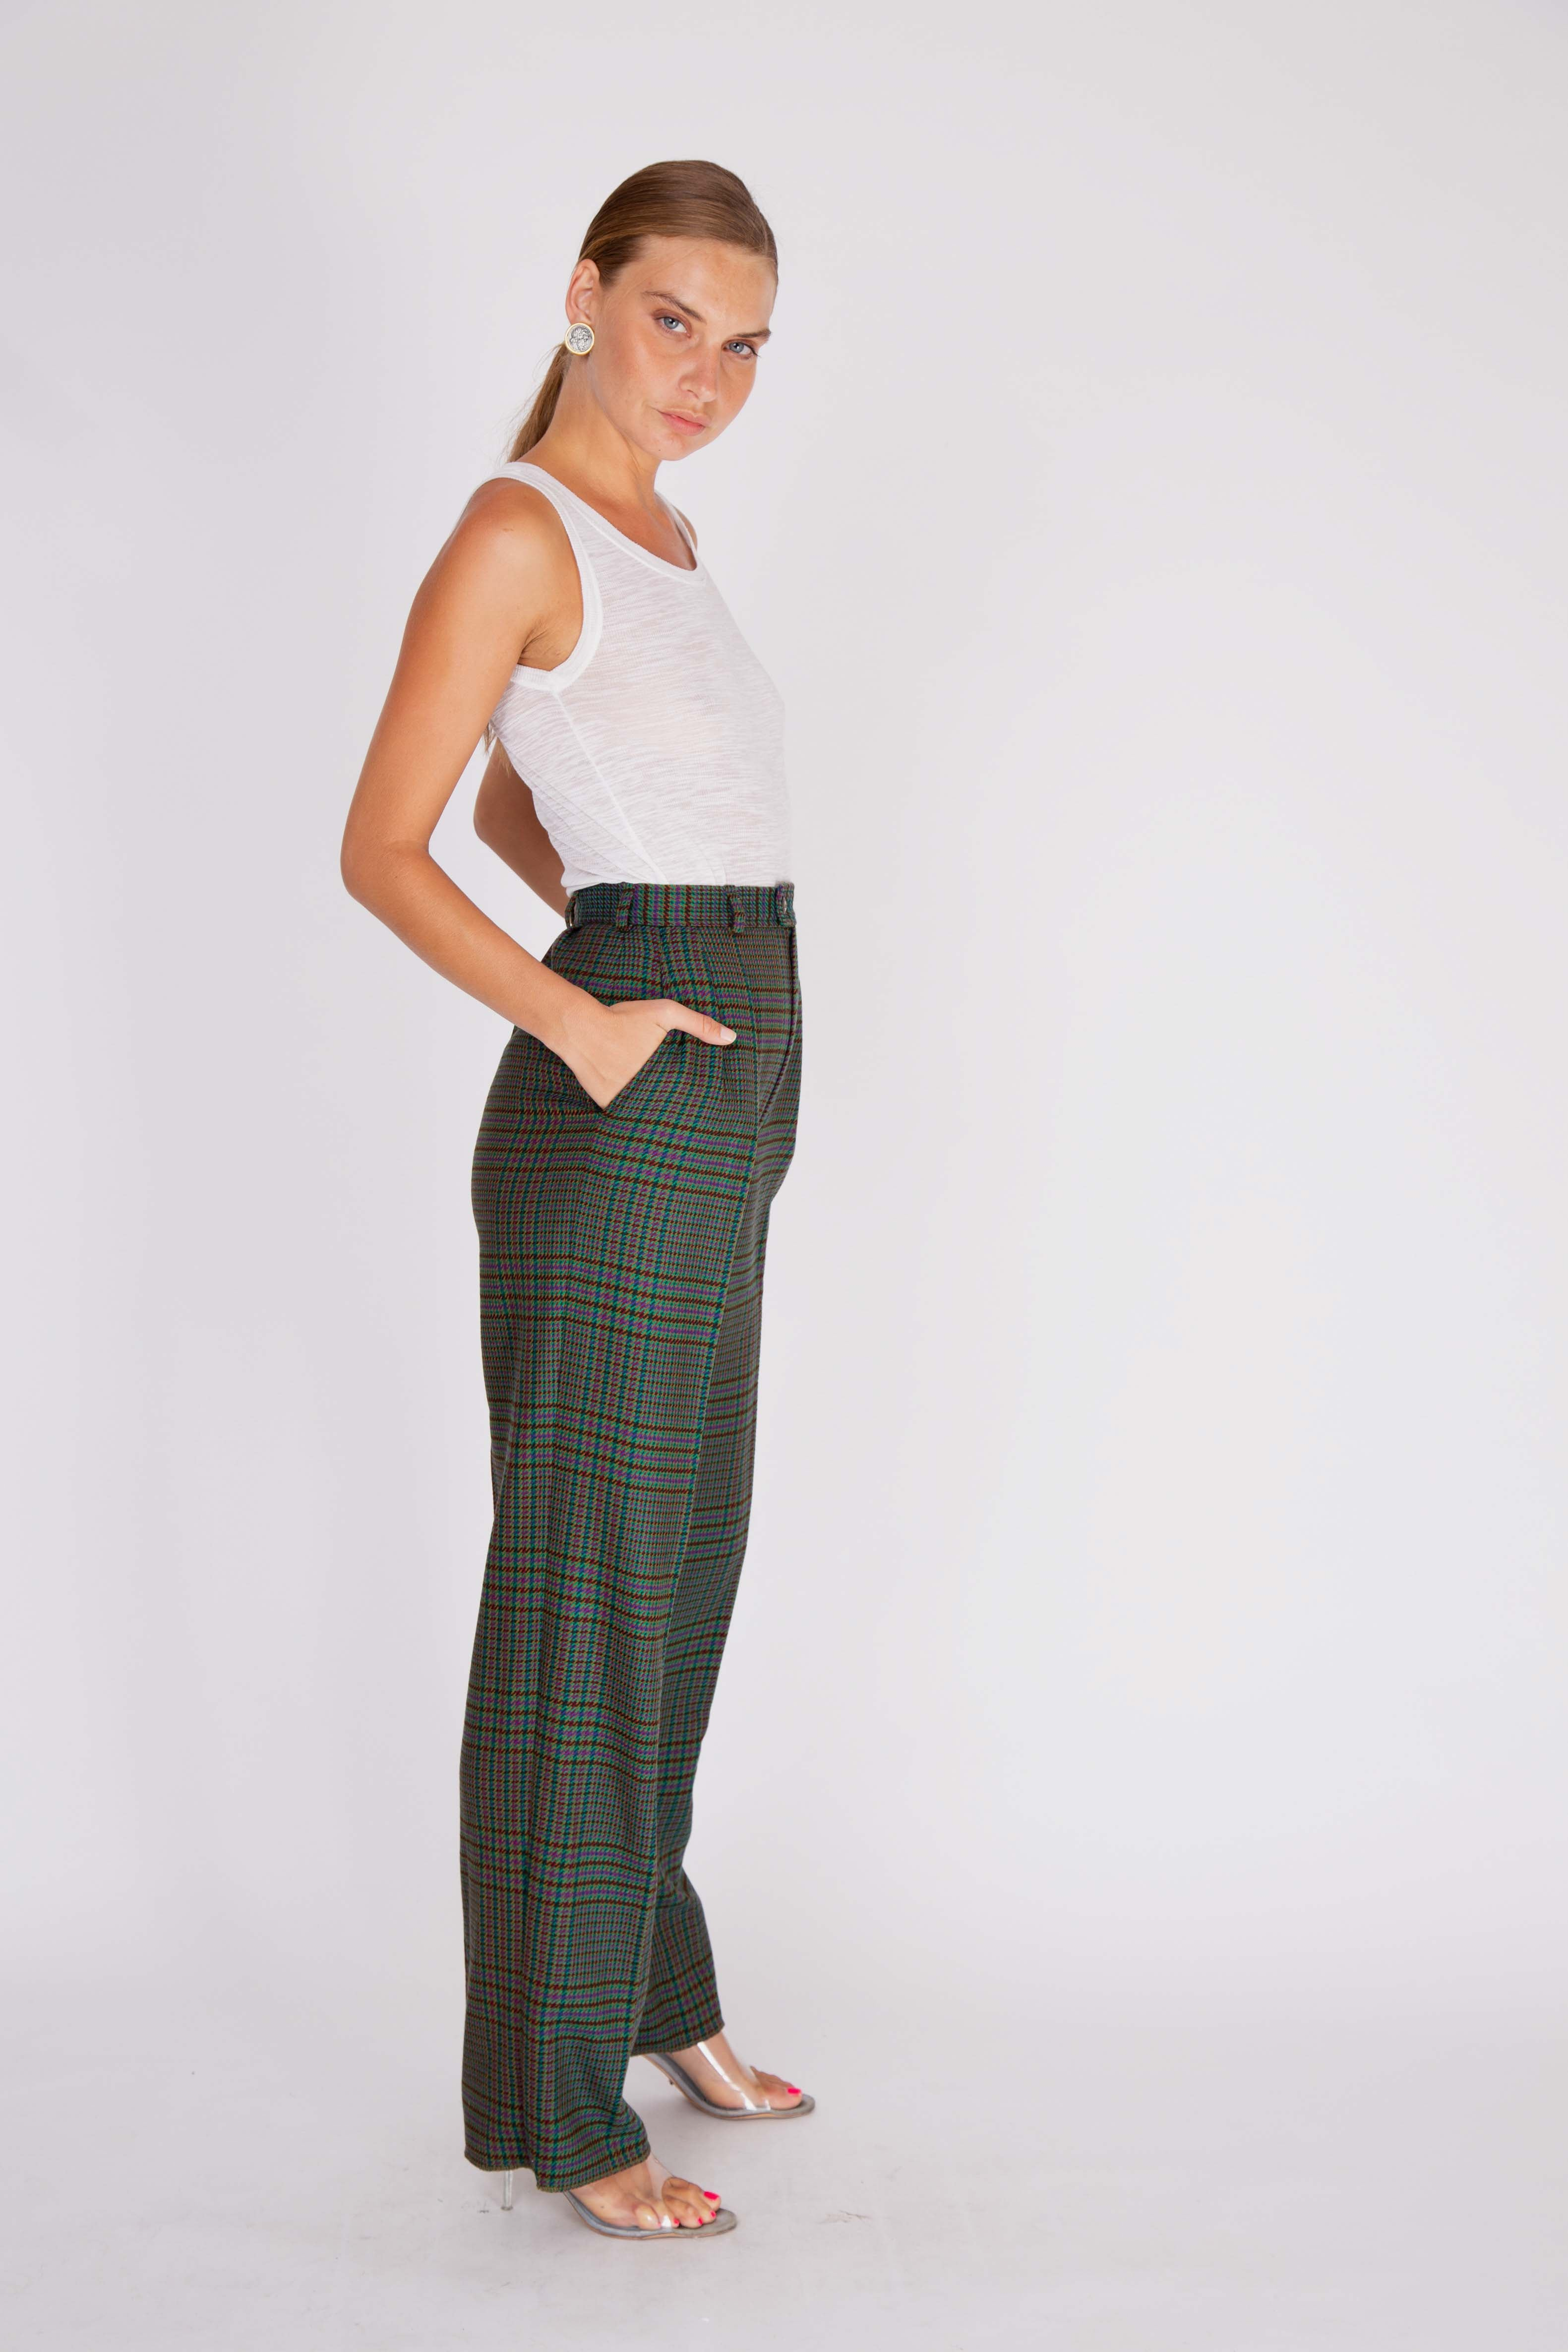 Yves Saint Laurent<br>1970's tweed trousers